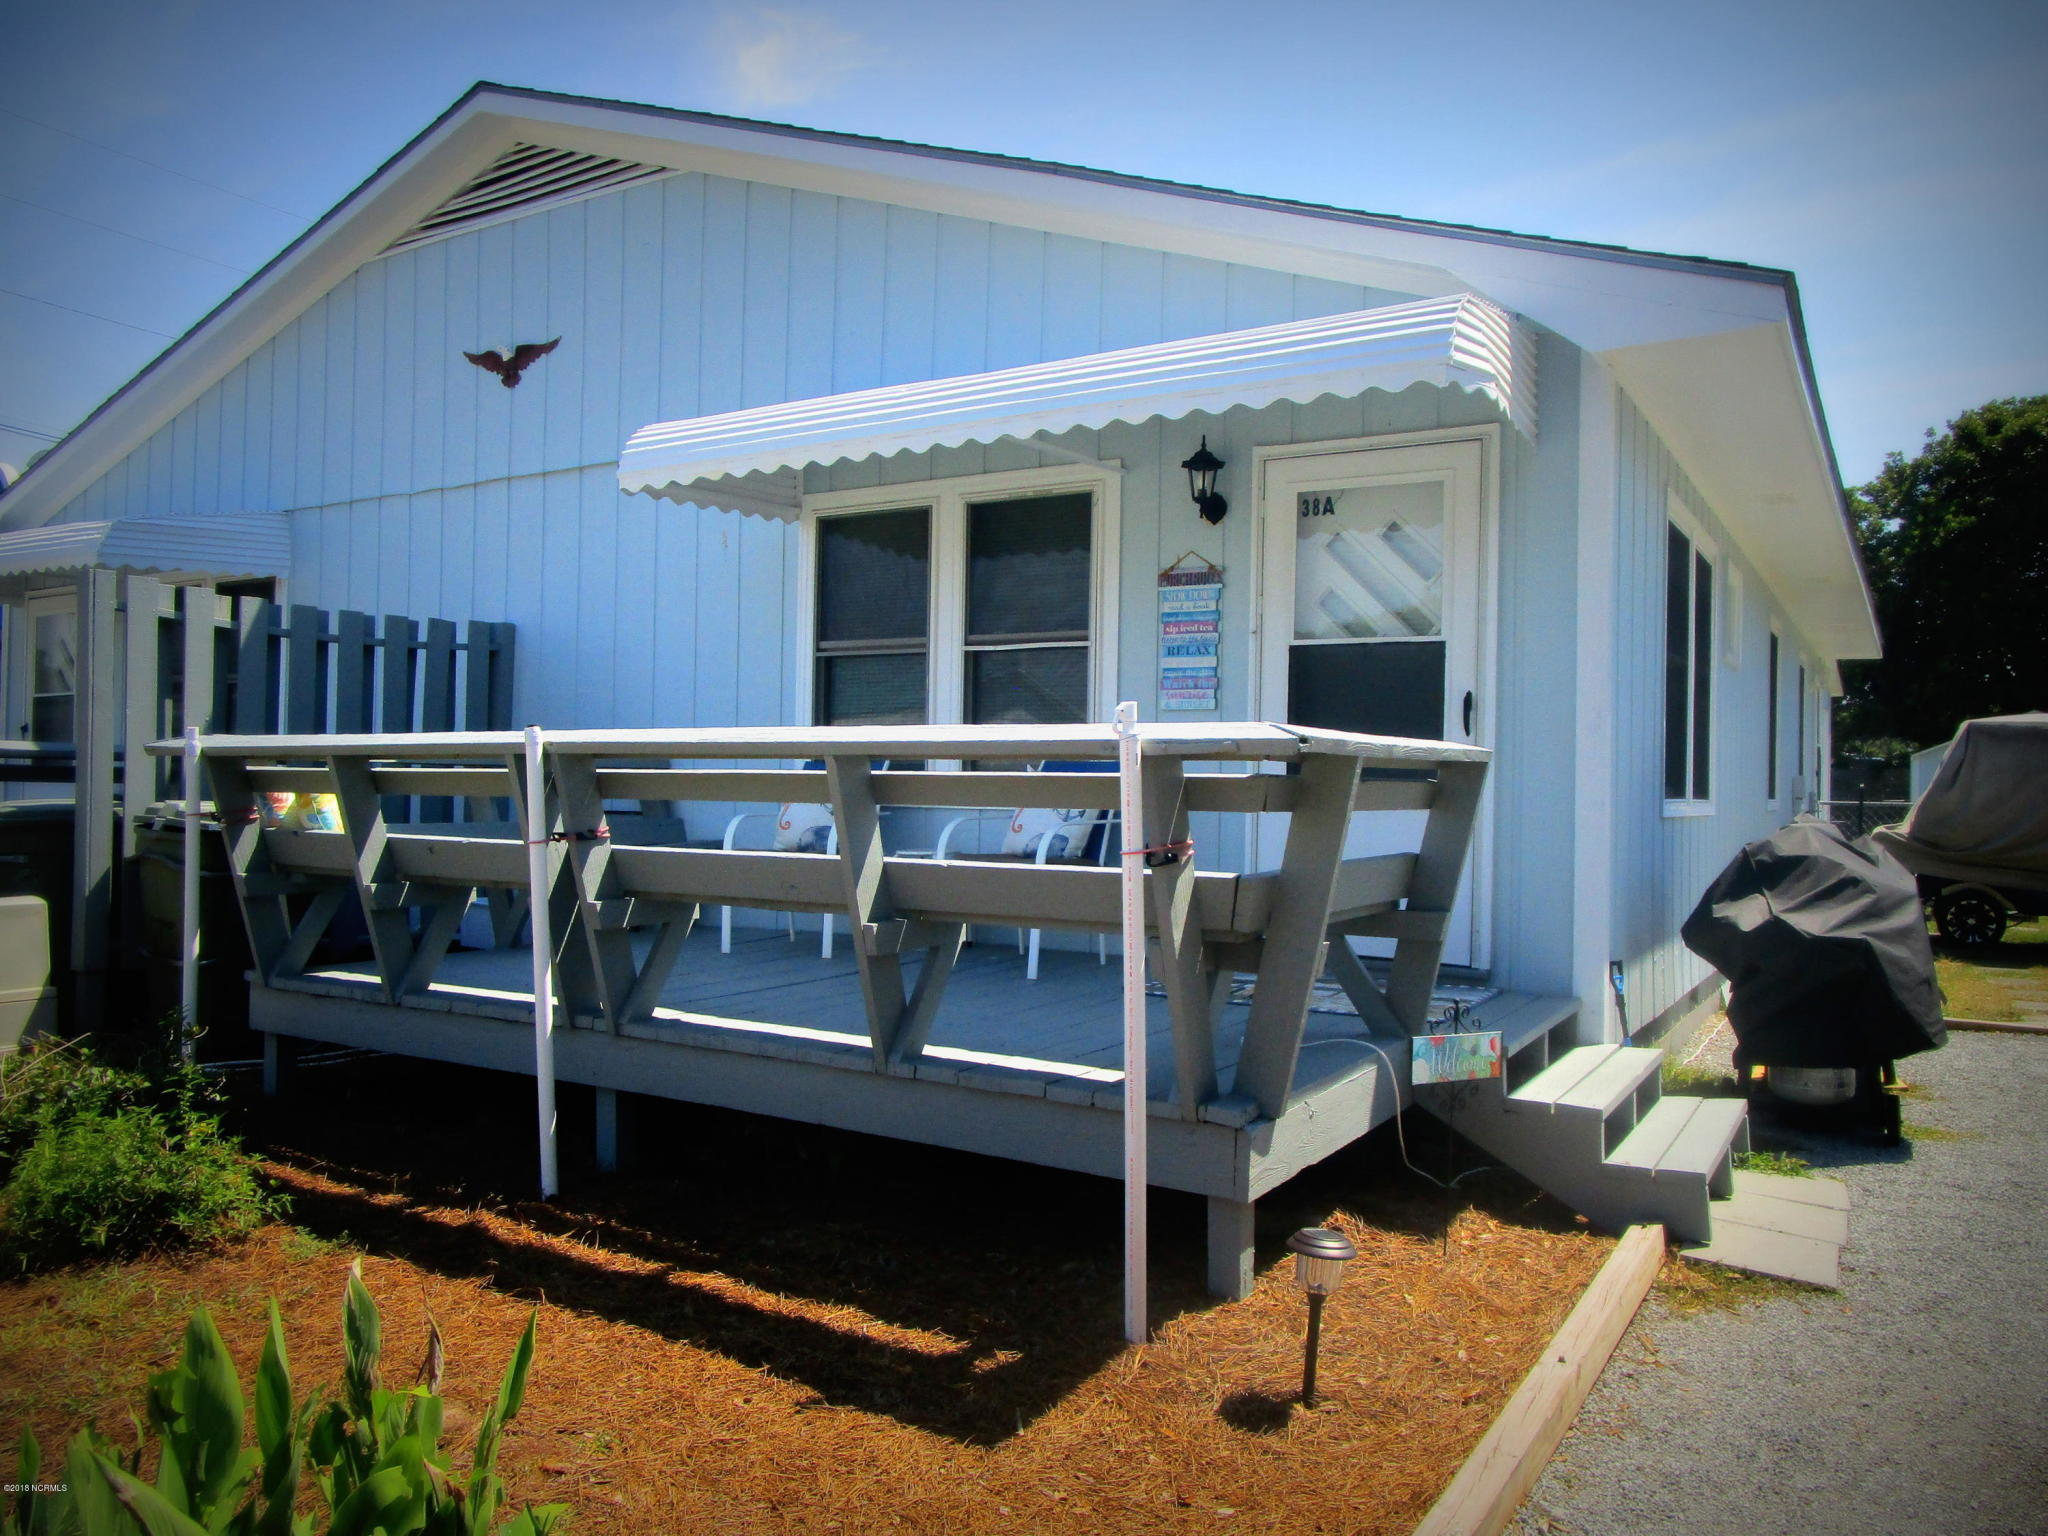 138 Bogue Inlet Dr #A, Emerald Isle, NC 28594 For Rent | Trulia on emerald isle nc photography, emerald isle nc shopping, emerald isle nc condos, emerald isle nc foreclosures, emerald isle nc rentals, emerald isle nc hotels, emerald isle nc weather, emerald isle nc zillow, emerald isle nc trulia,